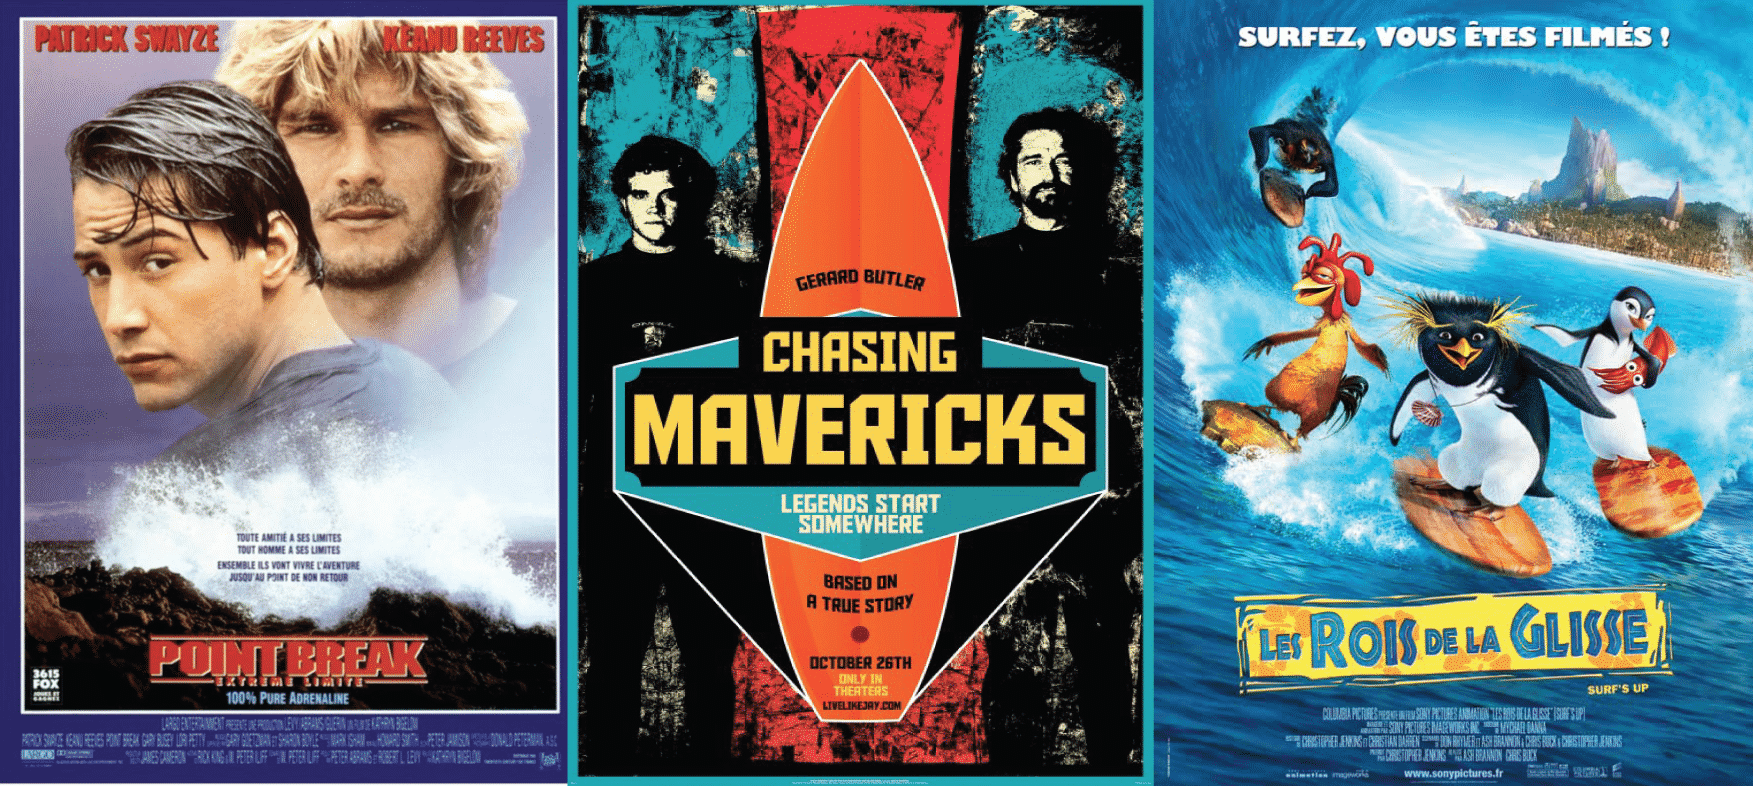 Top 5 des films de Surf-movie-point-break-chasing-mavericks-surfs-up